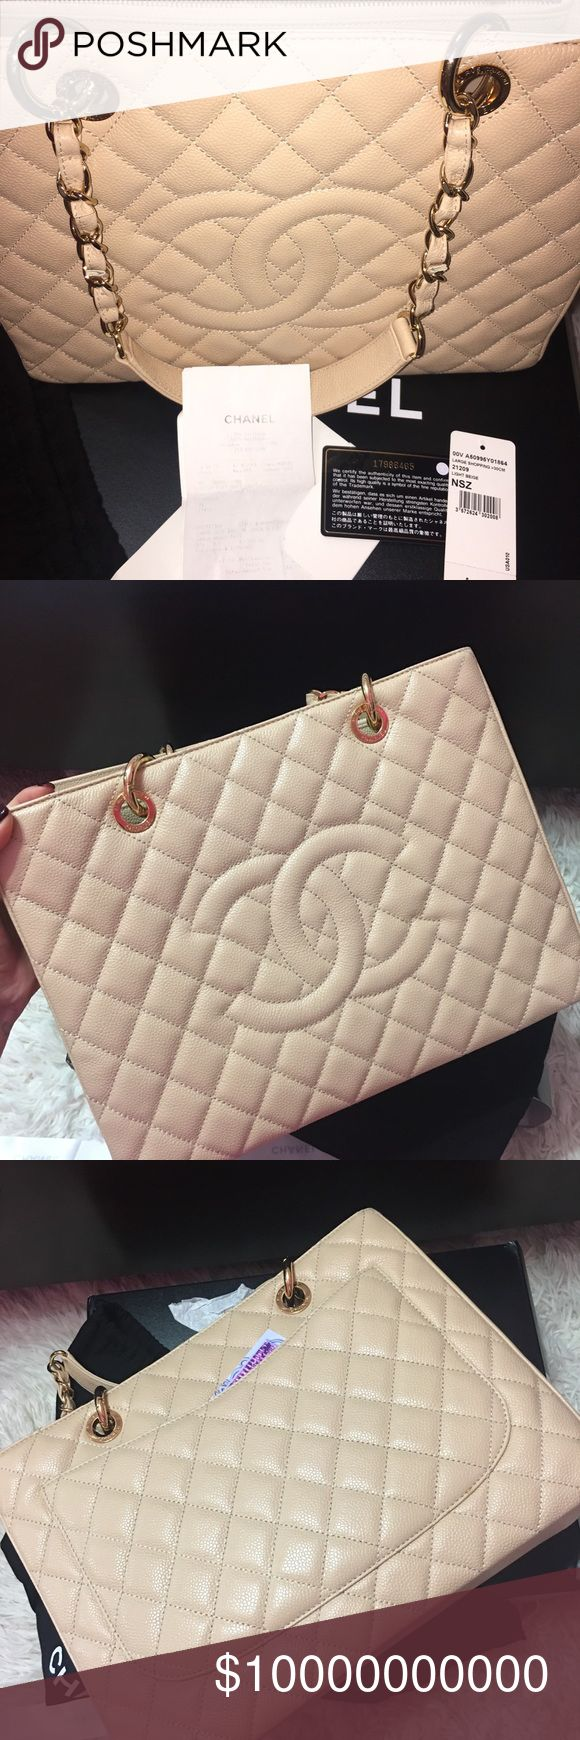 —Sharing my beautiful GST beige Chanel bag 👜 😍😘 I got this from a lady on FB. As you know this Chanel style is discontinued already, and fake is everywhere. However, I am so lucky that the lady has everything included (Box, Paper bag, dustbag, Price tag, Authentication card, and receipt) , and she keeps the bag so clean and new. CHANEL Bags Totes